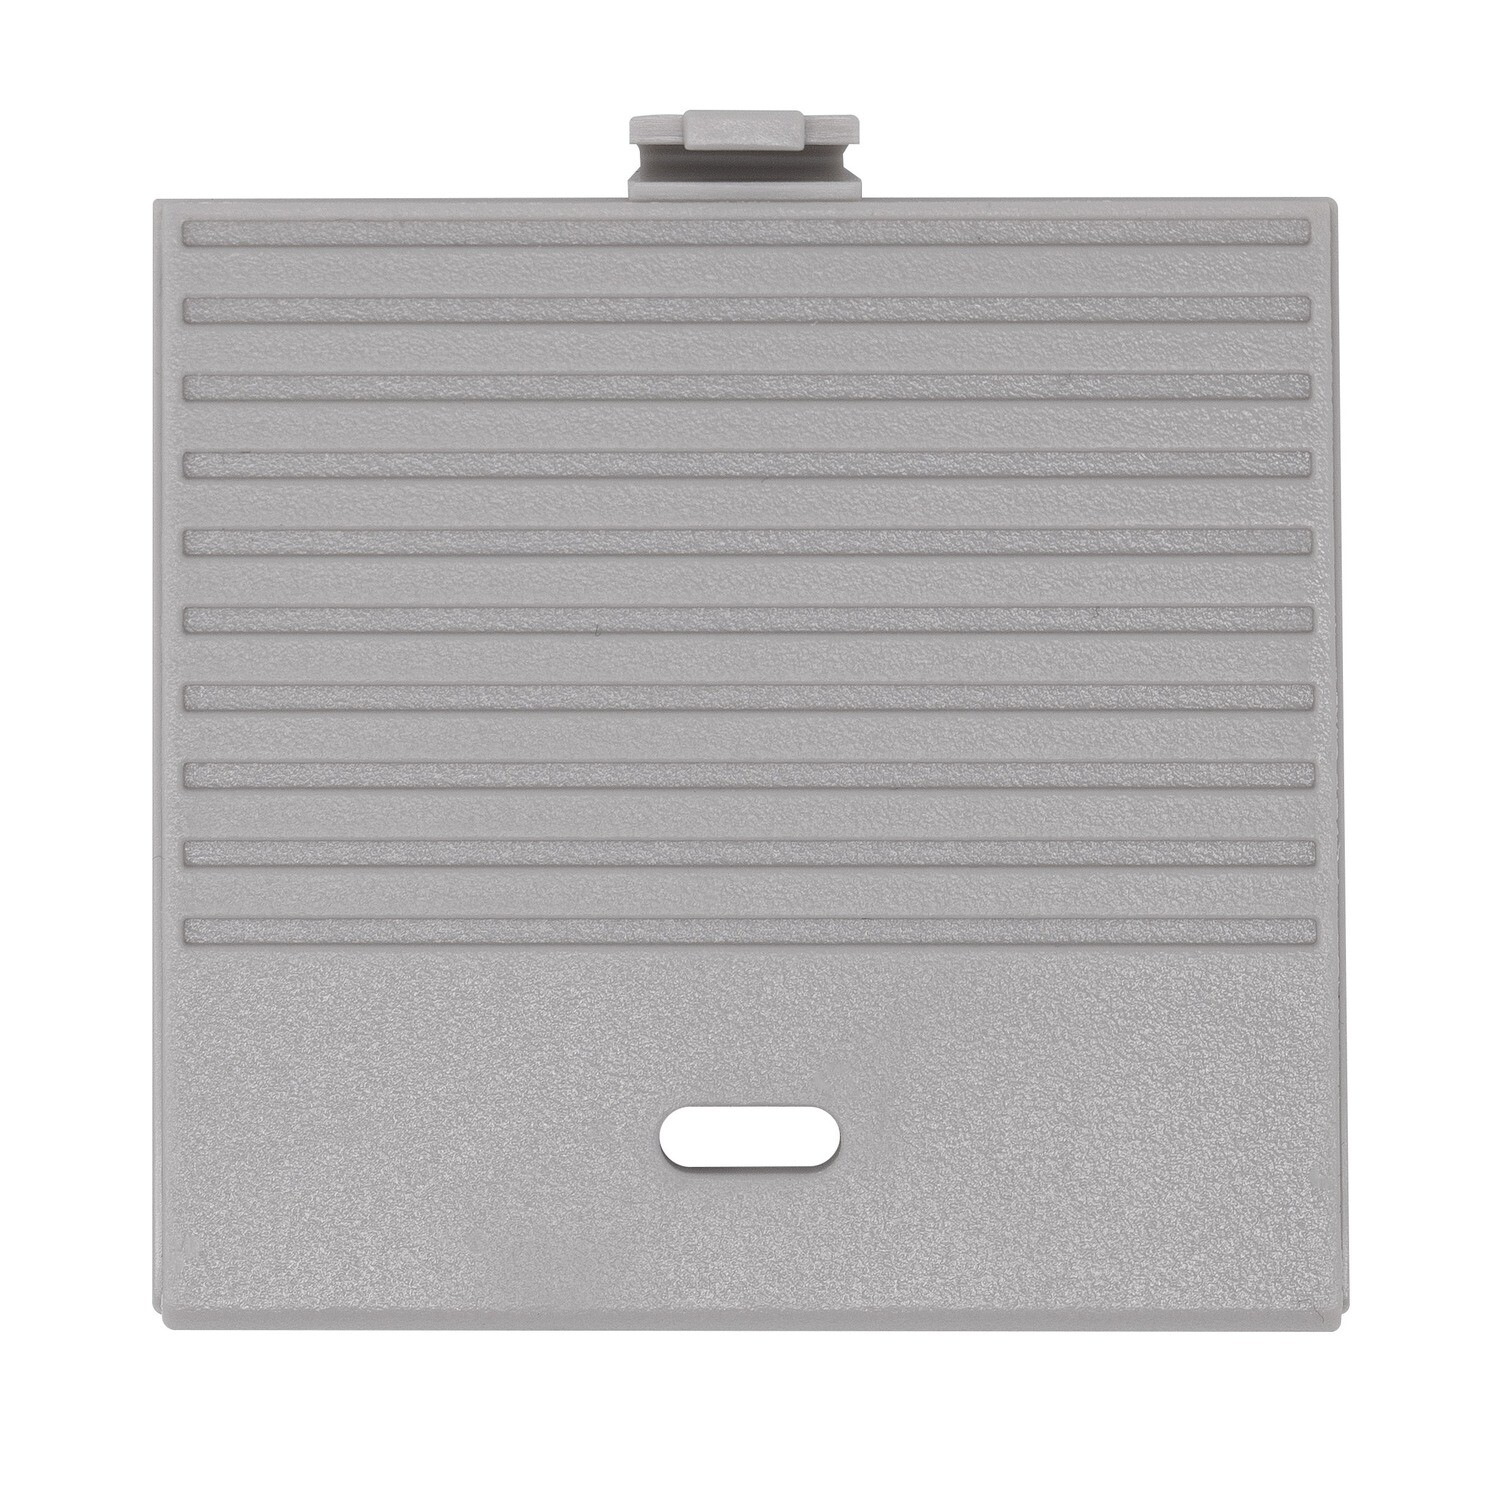 Game Boy Original USB-C Battery Cover (Grey)